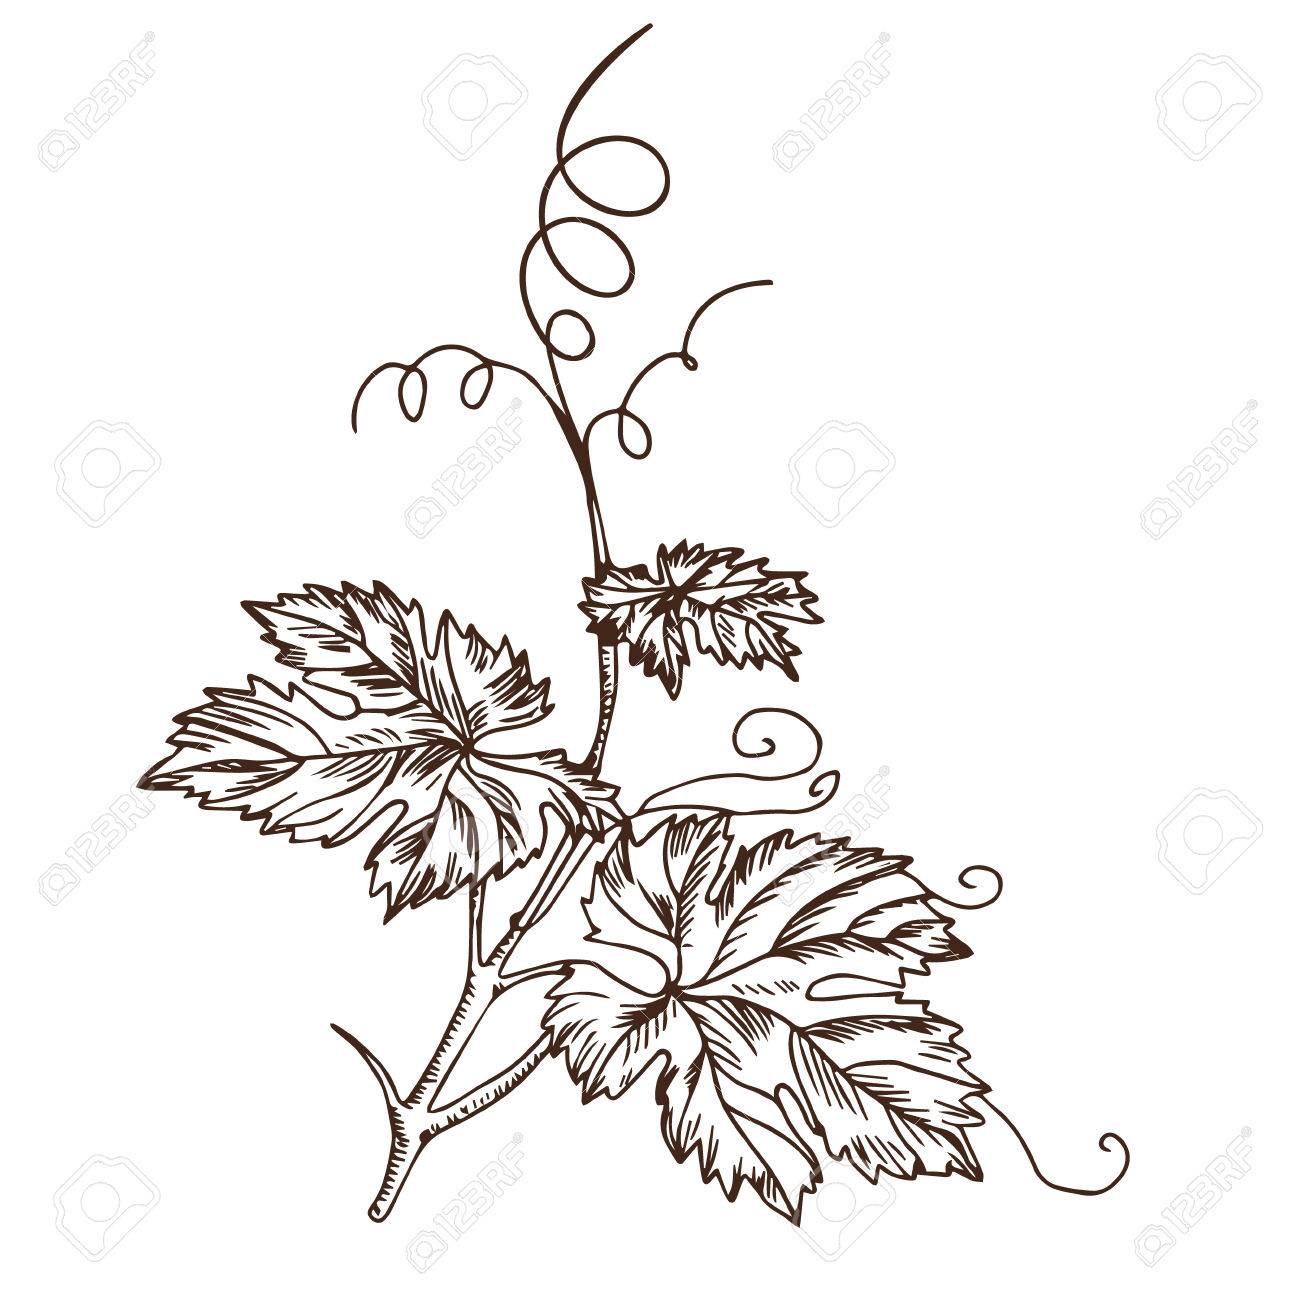 Grape Leaves In The Style Of A Sketch Royalty Free Cliparts Vectors And Stock Illustration Image 63114992